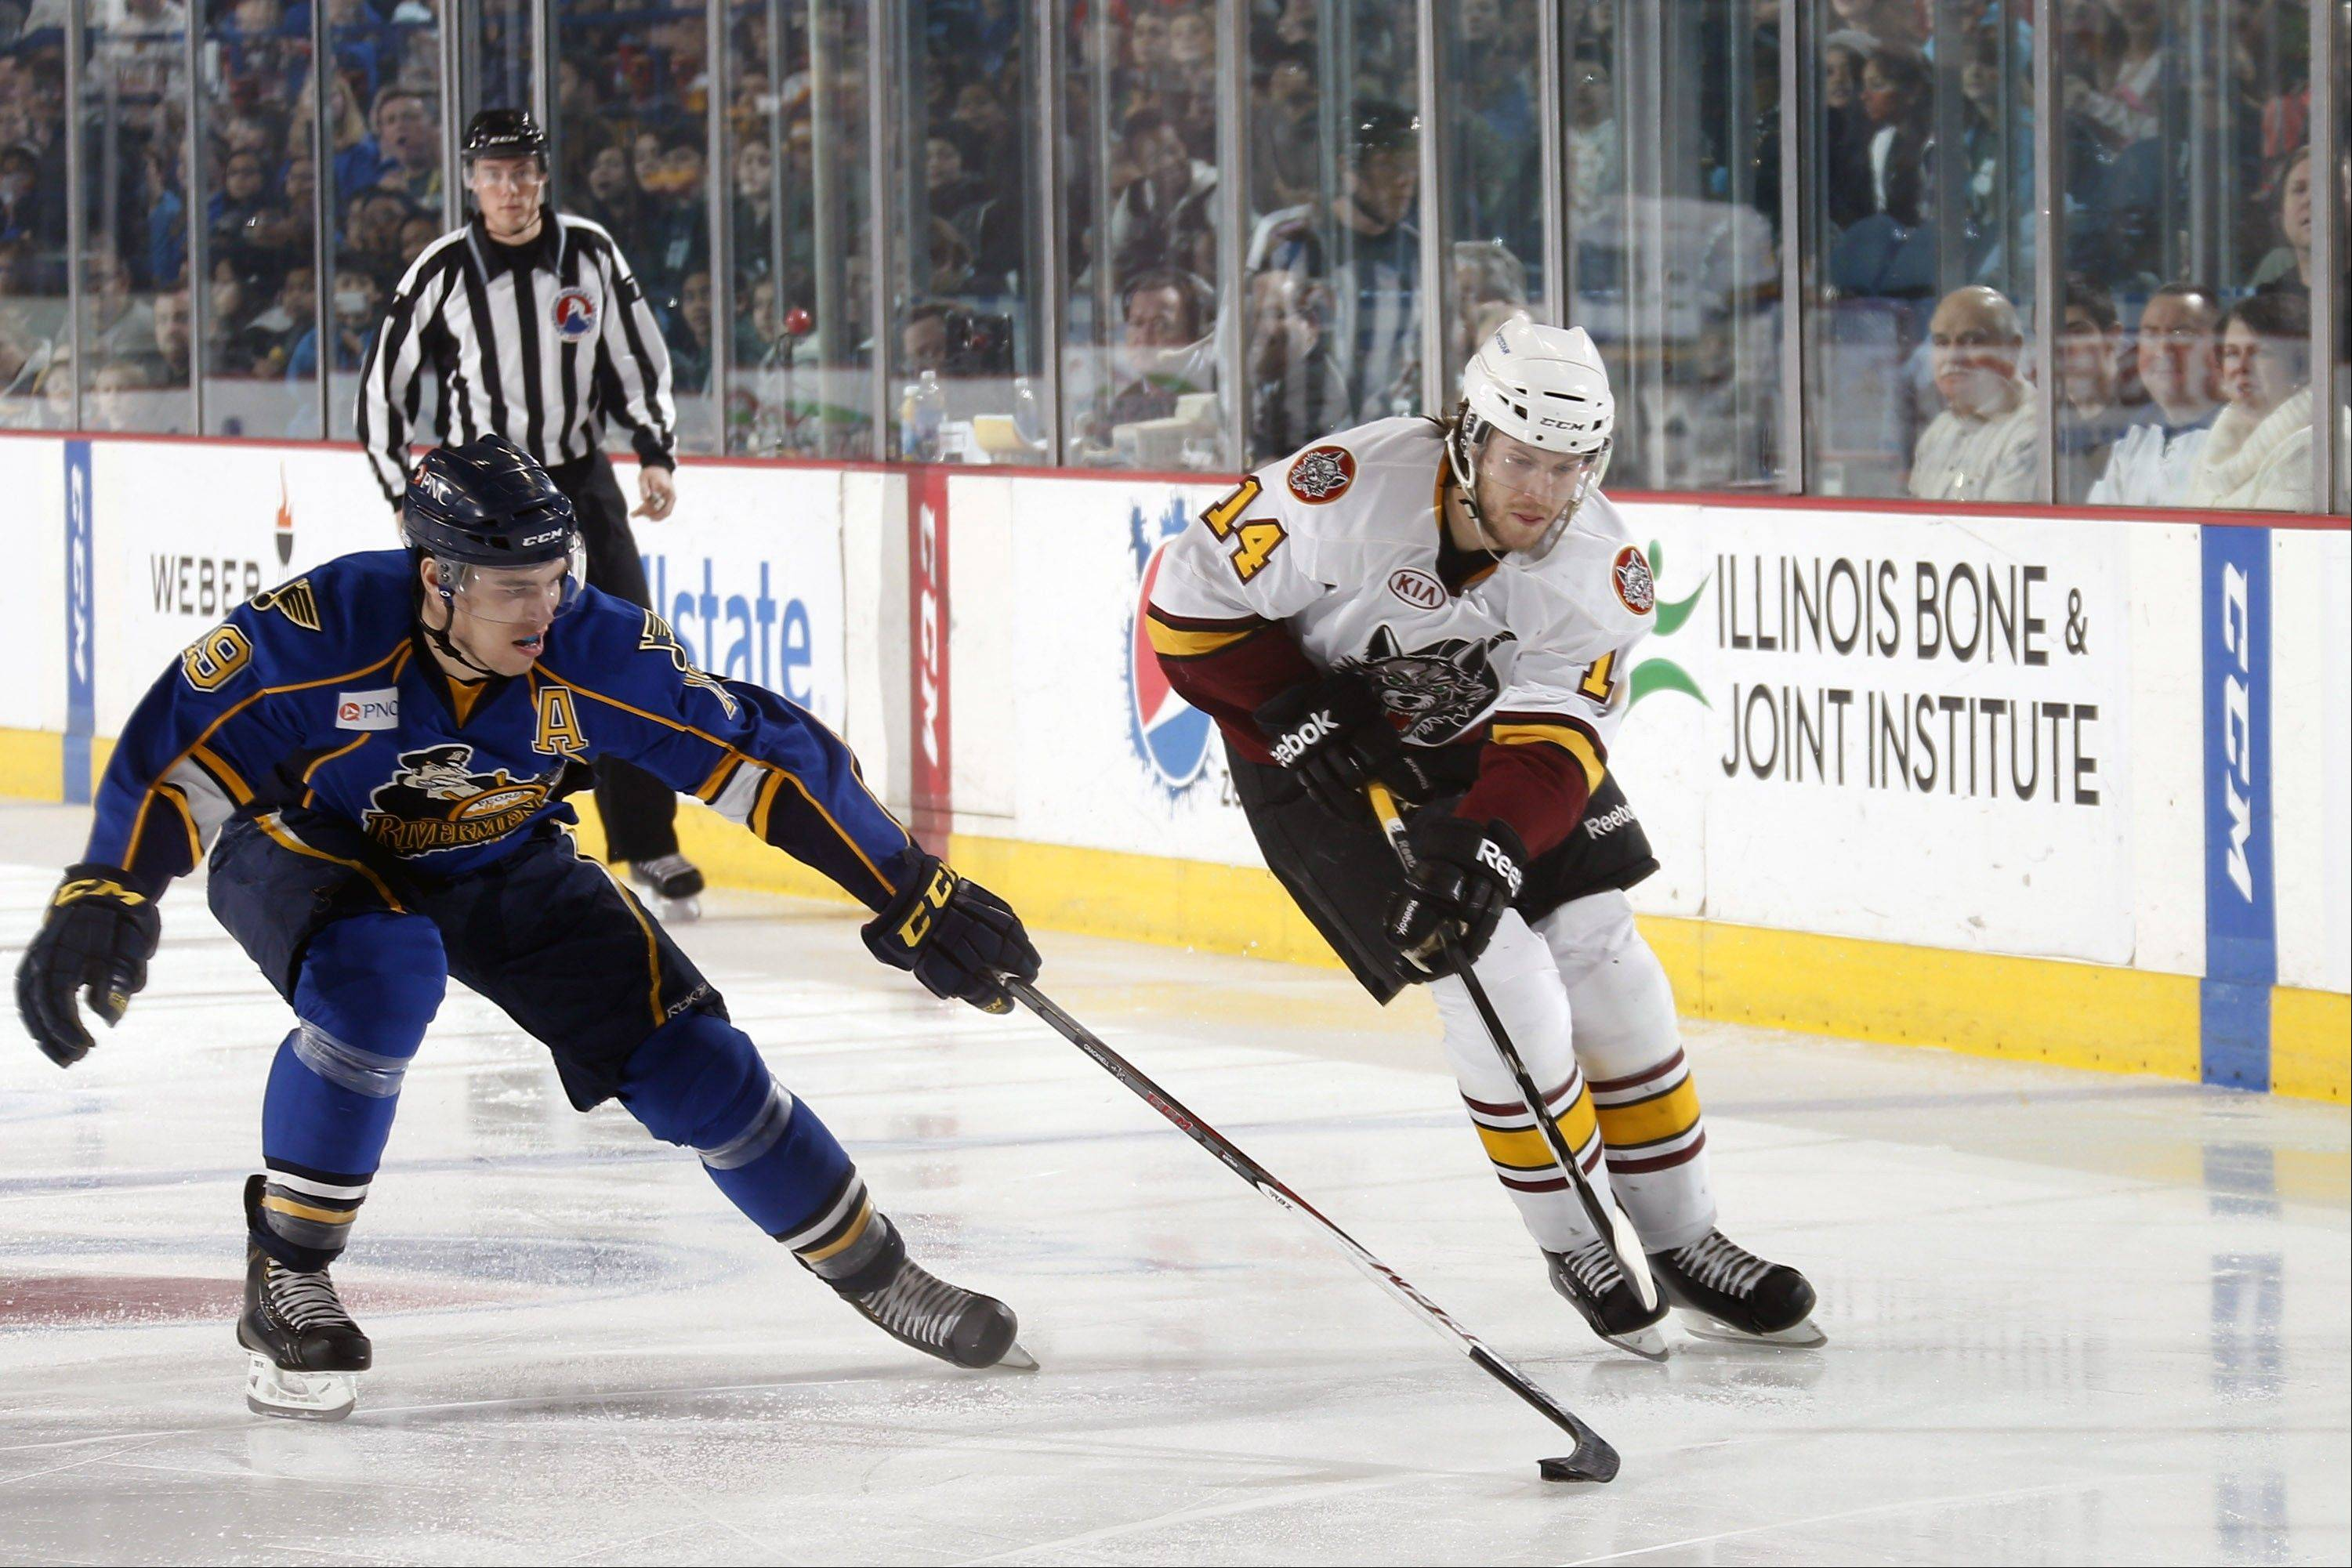 Wolves forward Tim Miller (14) and Peoria center Adam Cracknell work for position during Tuesday's 4-3 OT win by the Wolves at Allstate Arena.